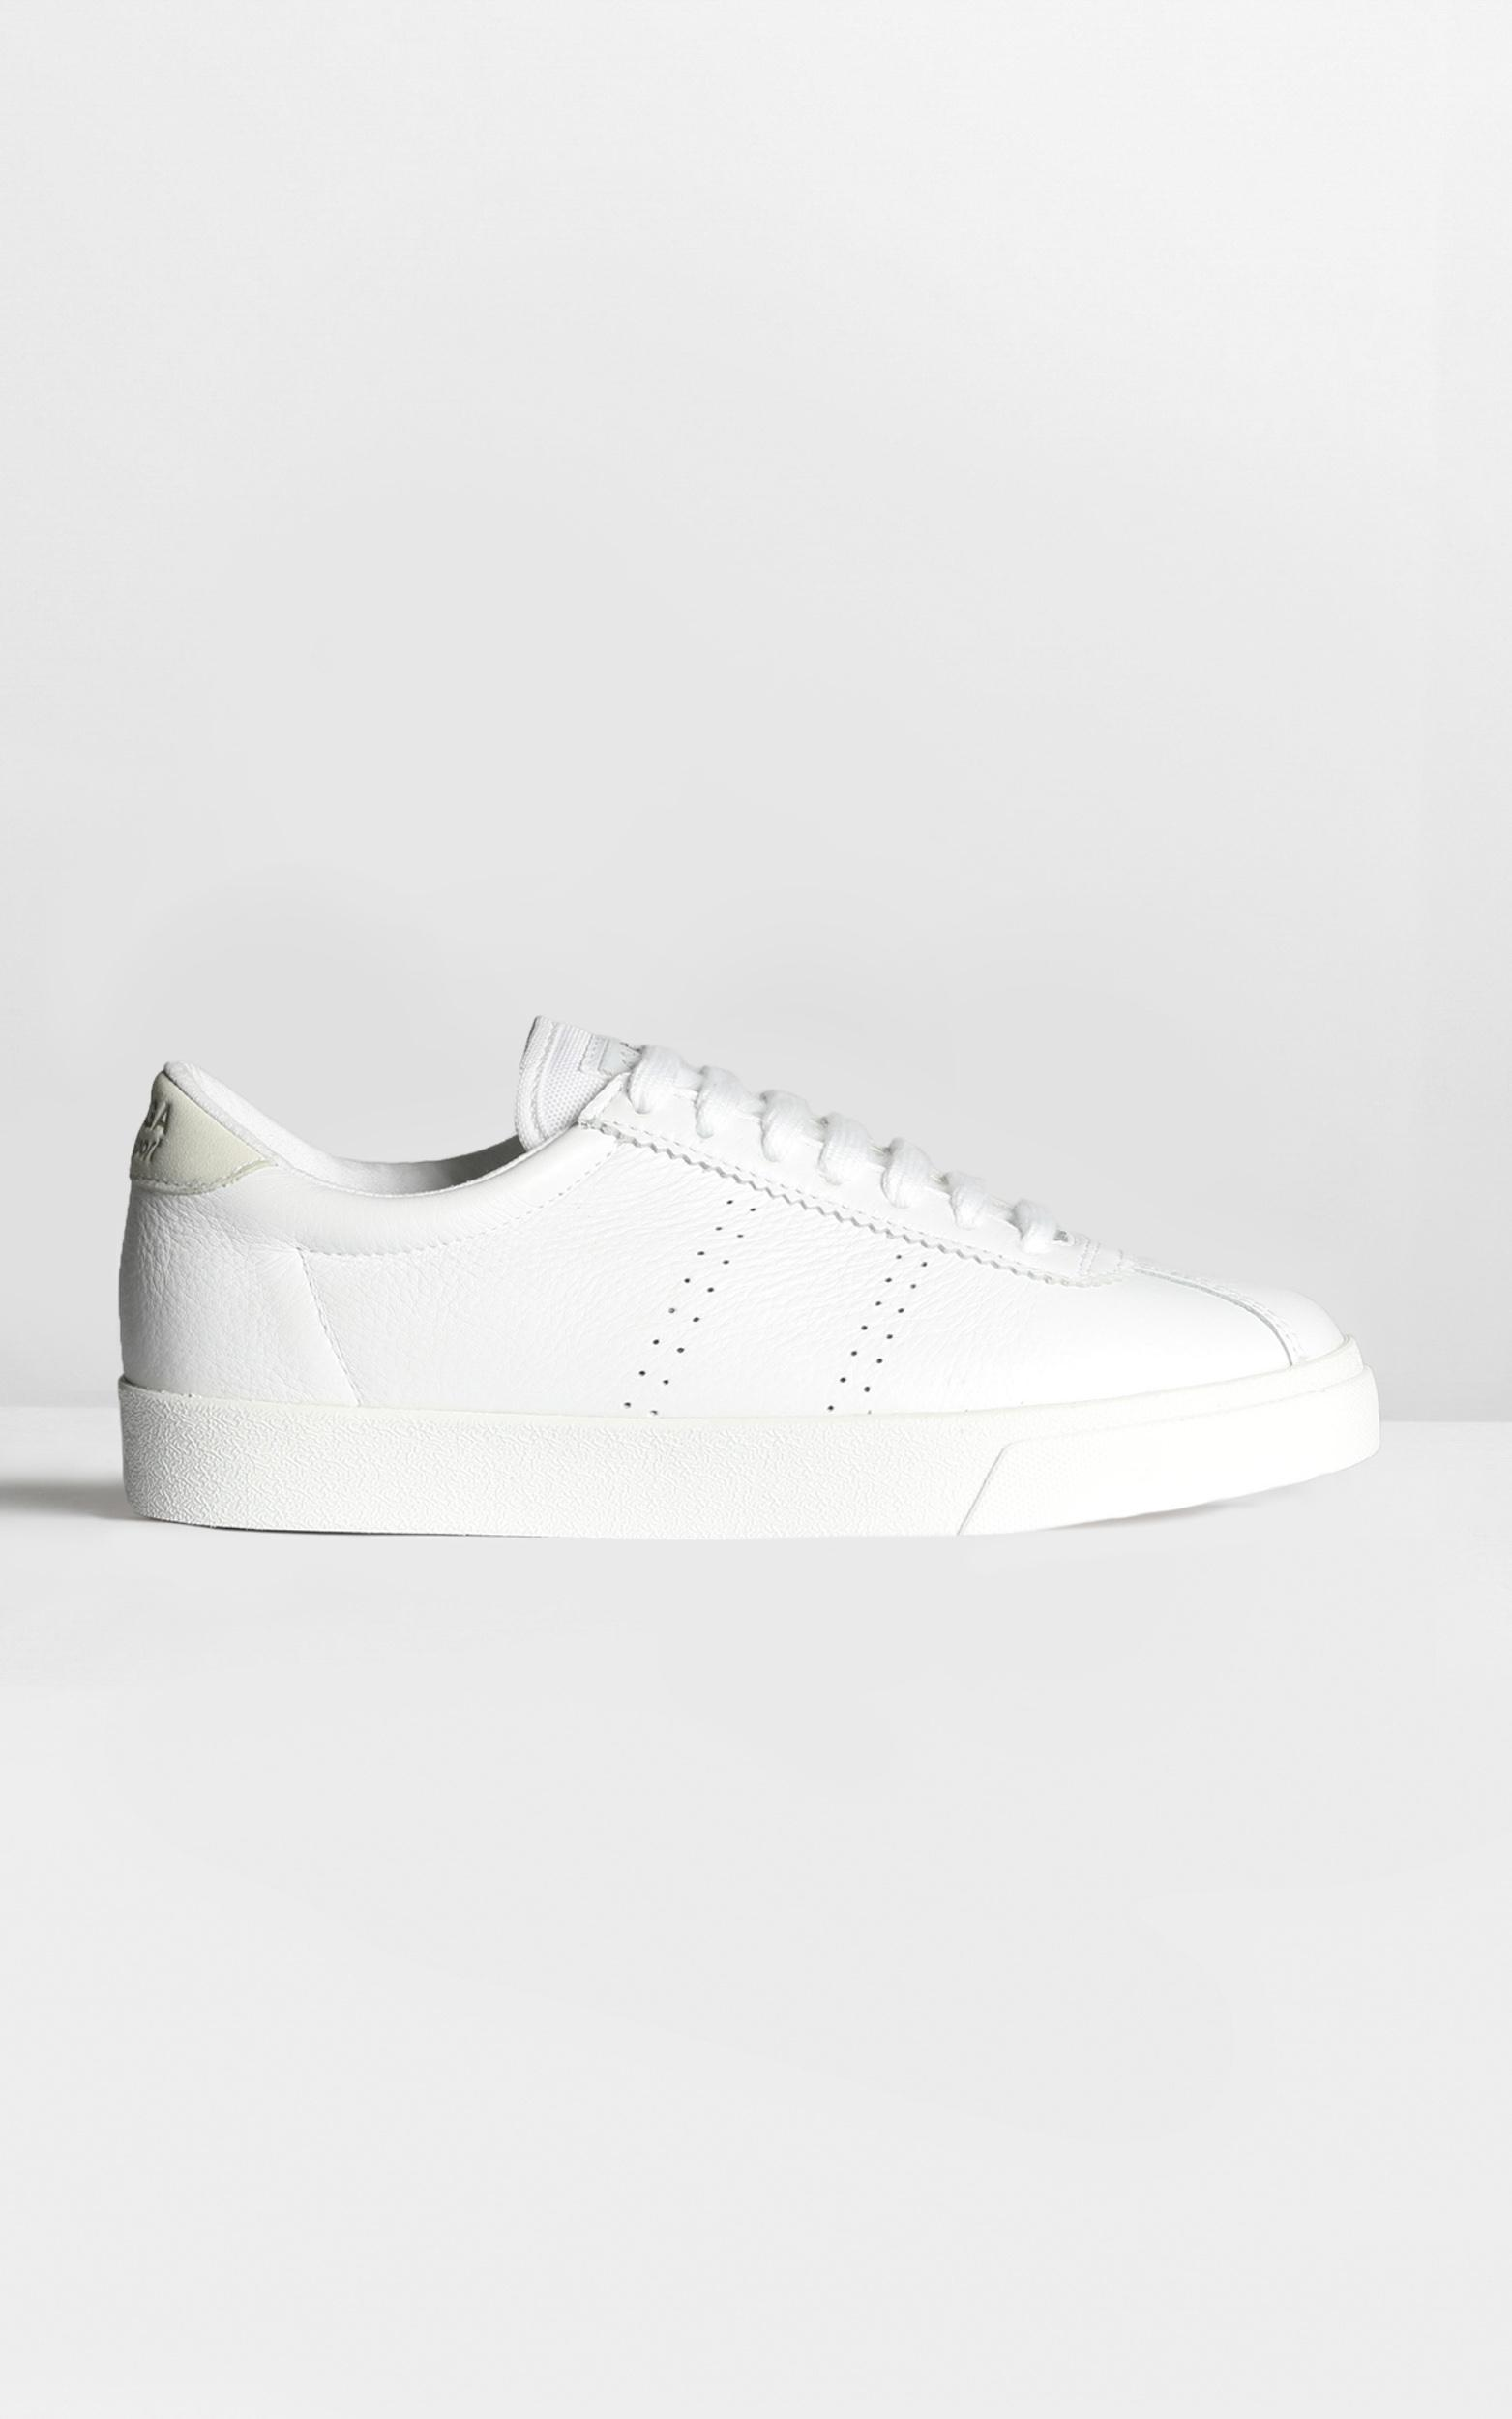 Superga - 2843 Clubs Comfleau in white leather - 9, White, hi-res image number null